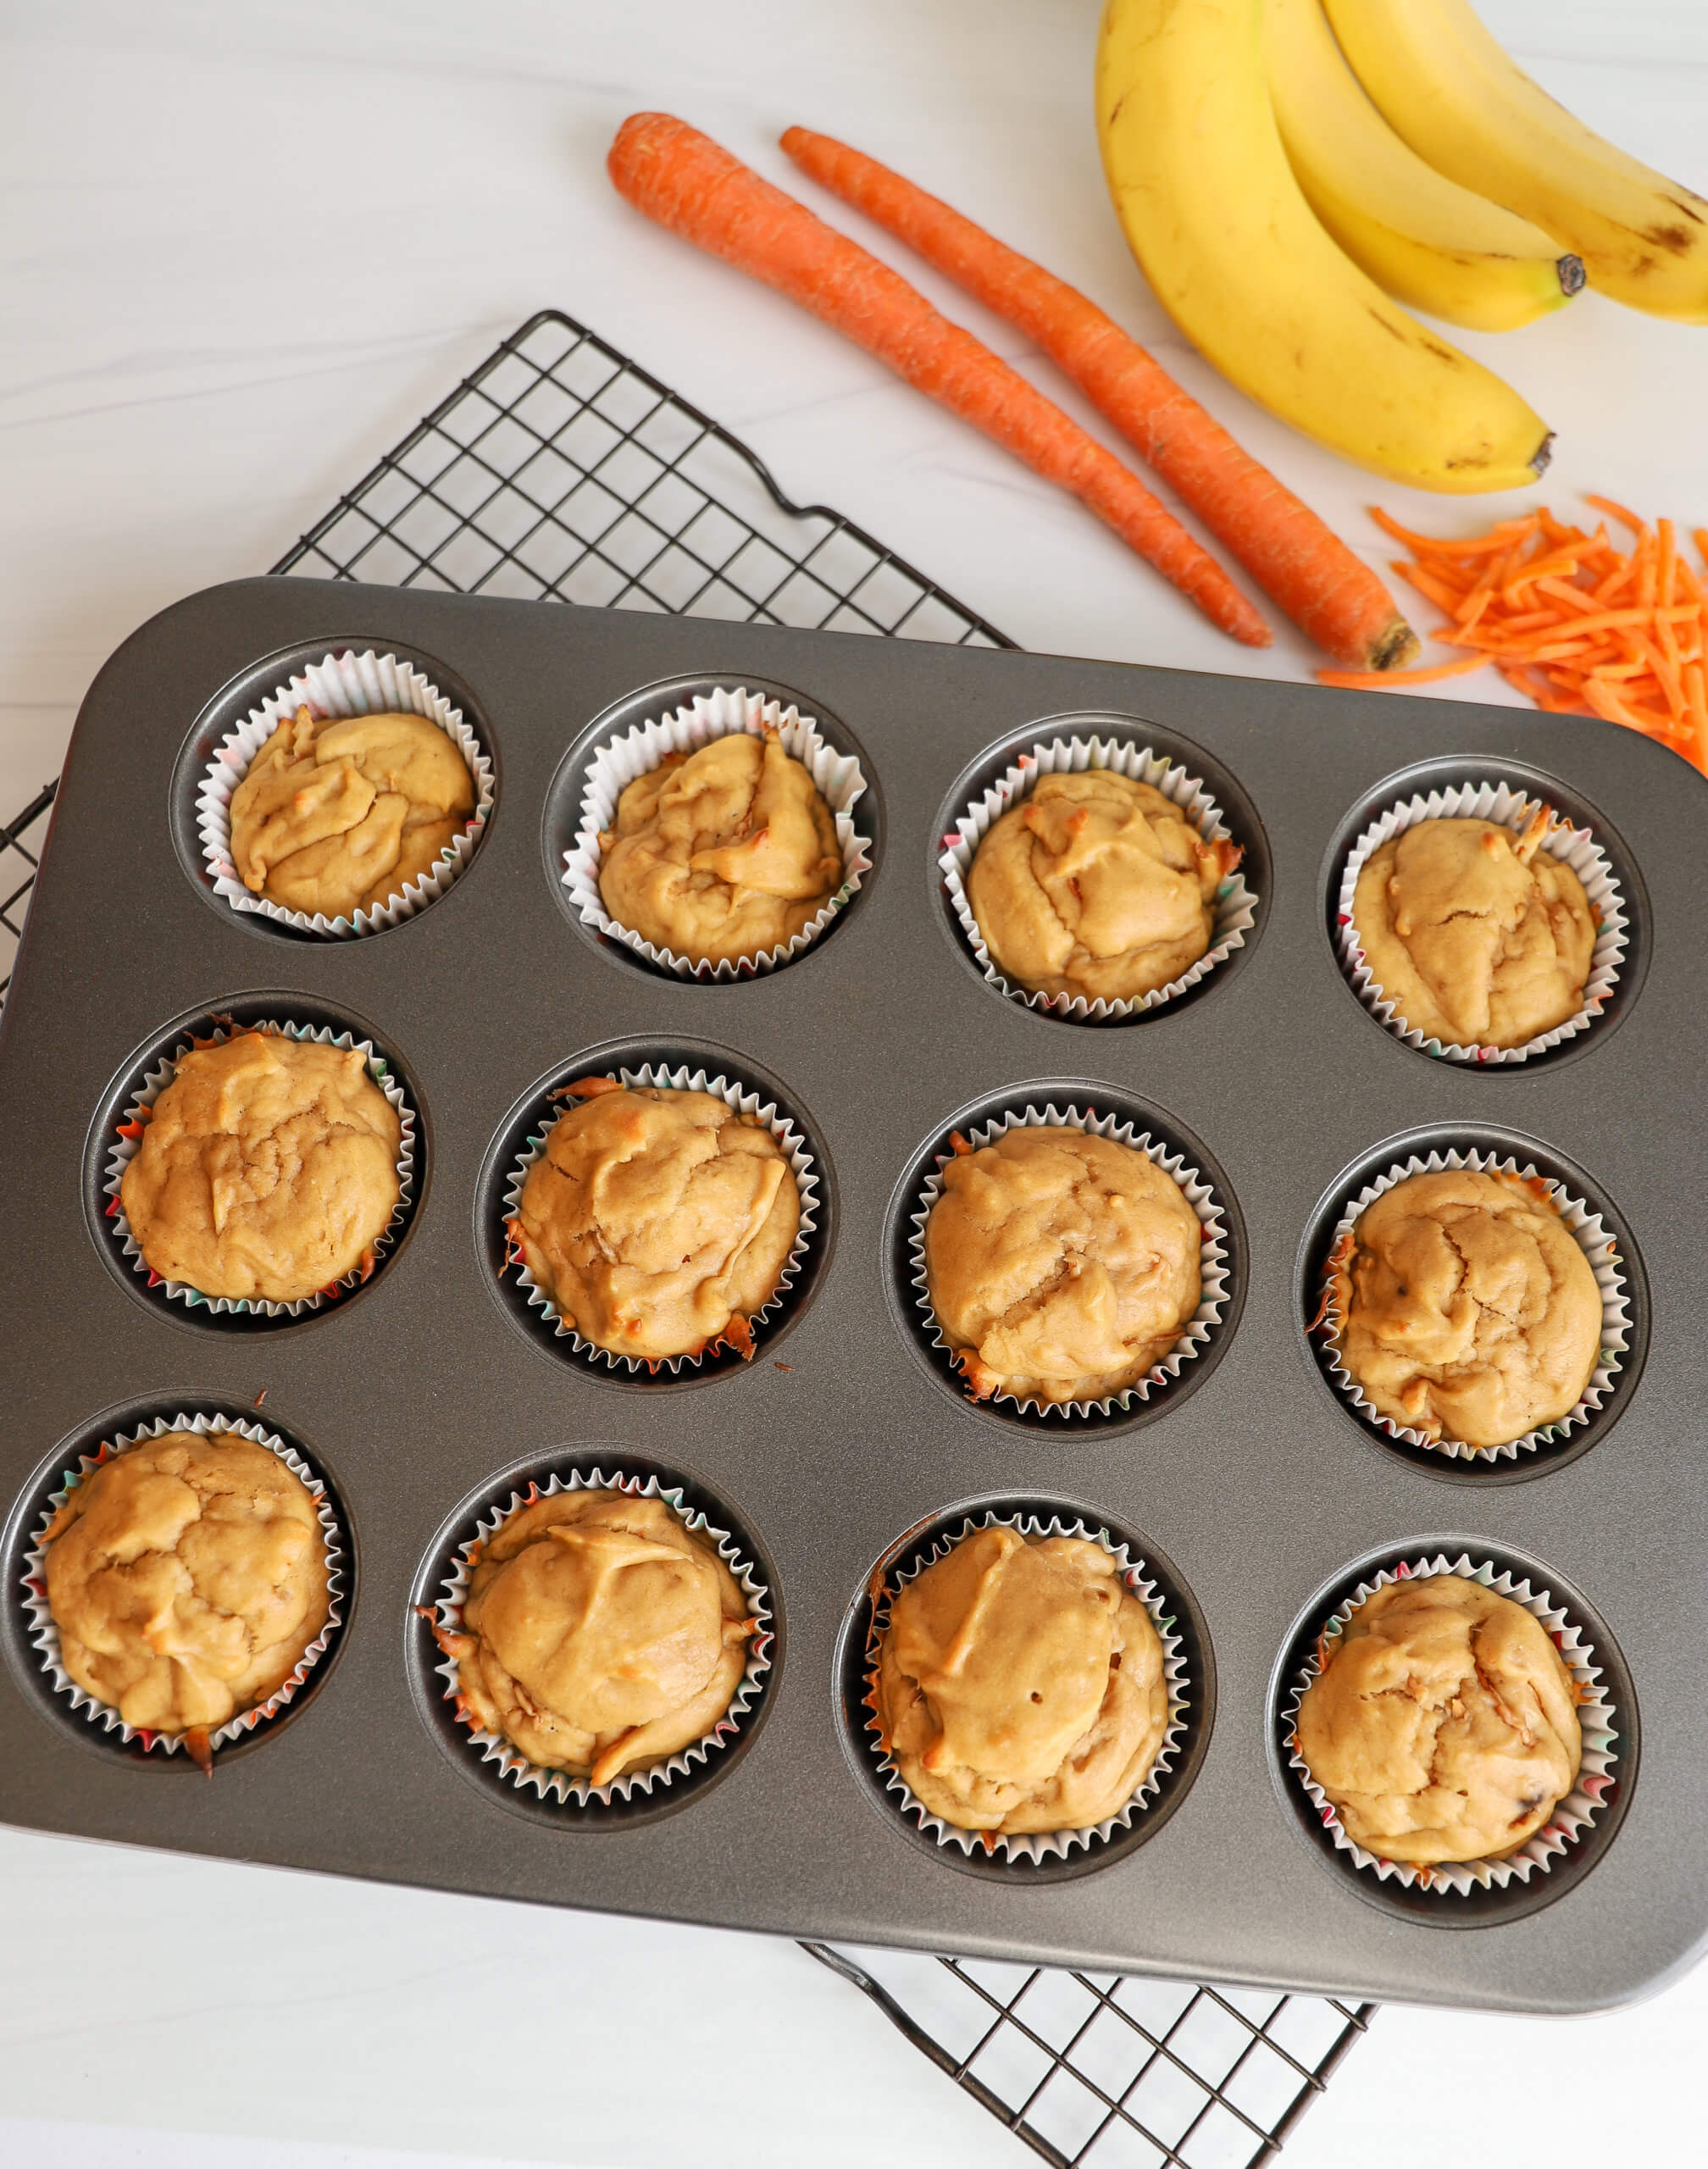 Making Peanut Butter and Banana Pupcakes